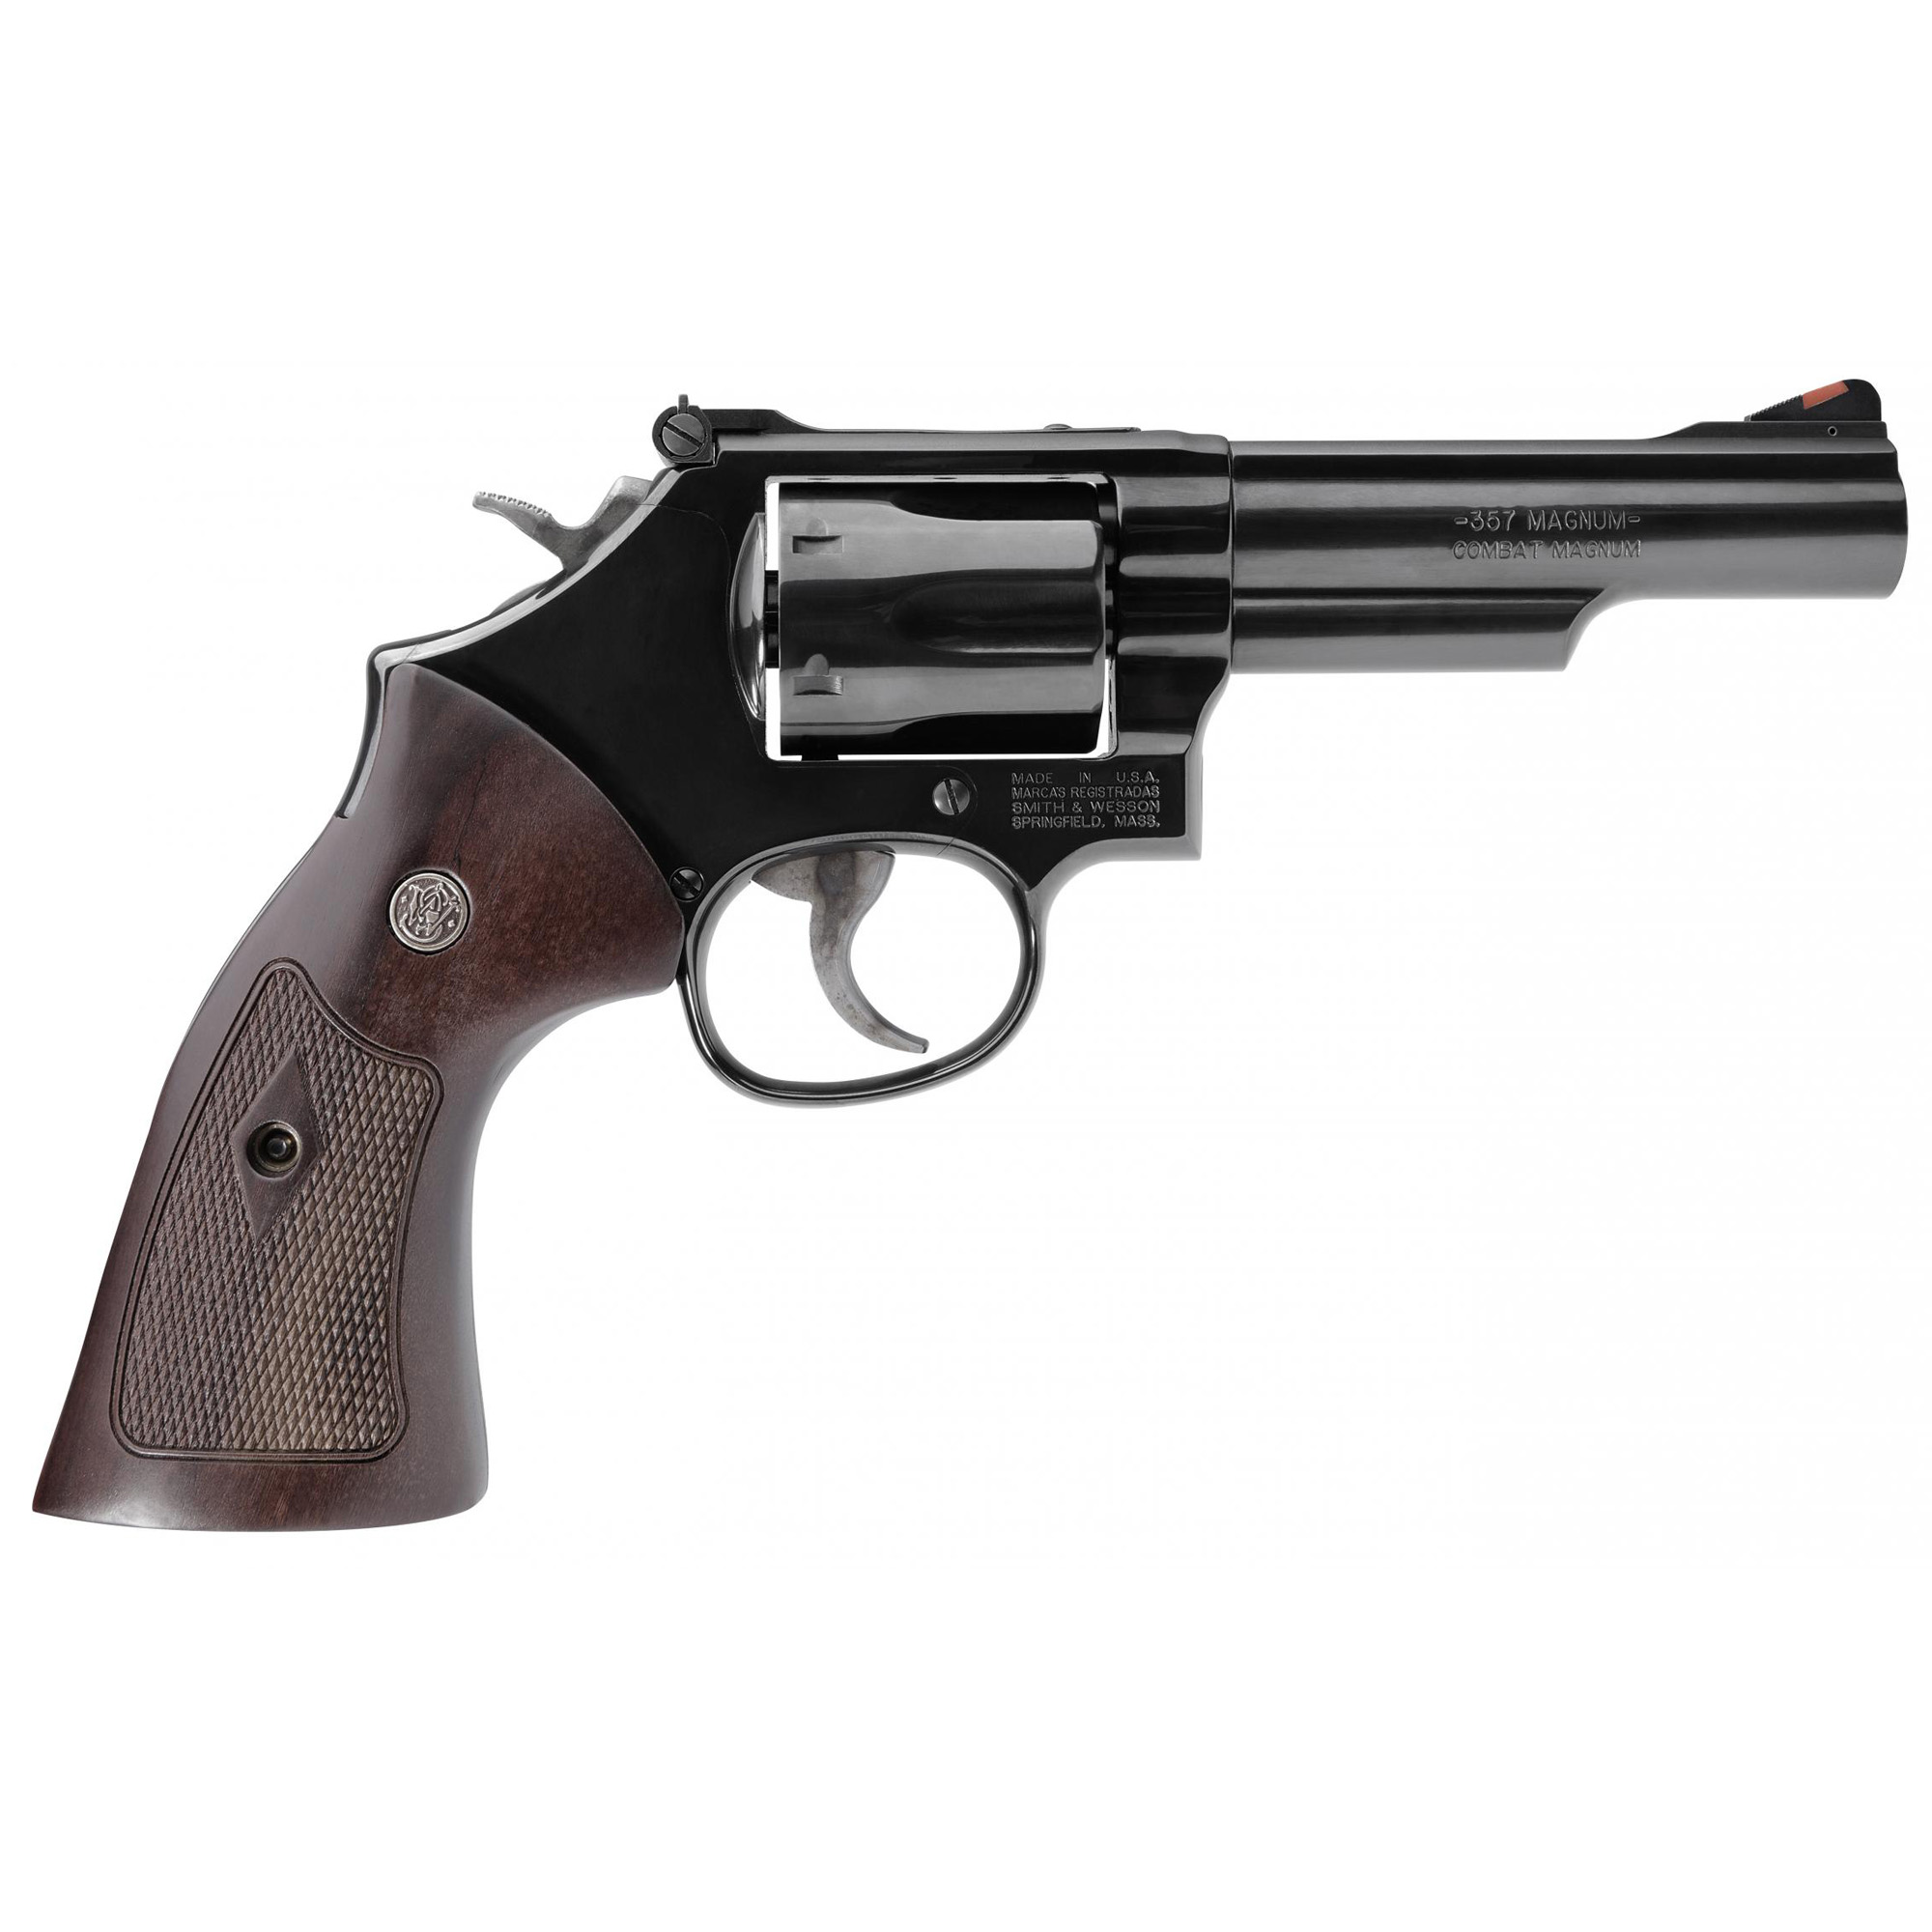 Smith & Wesson 12040 19 Classic 357 Mag 6rd 4.25